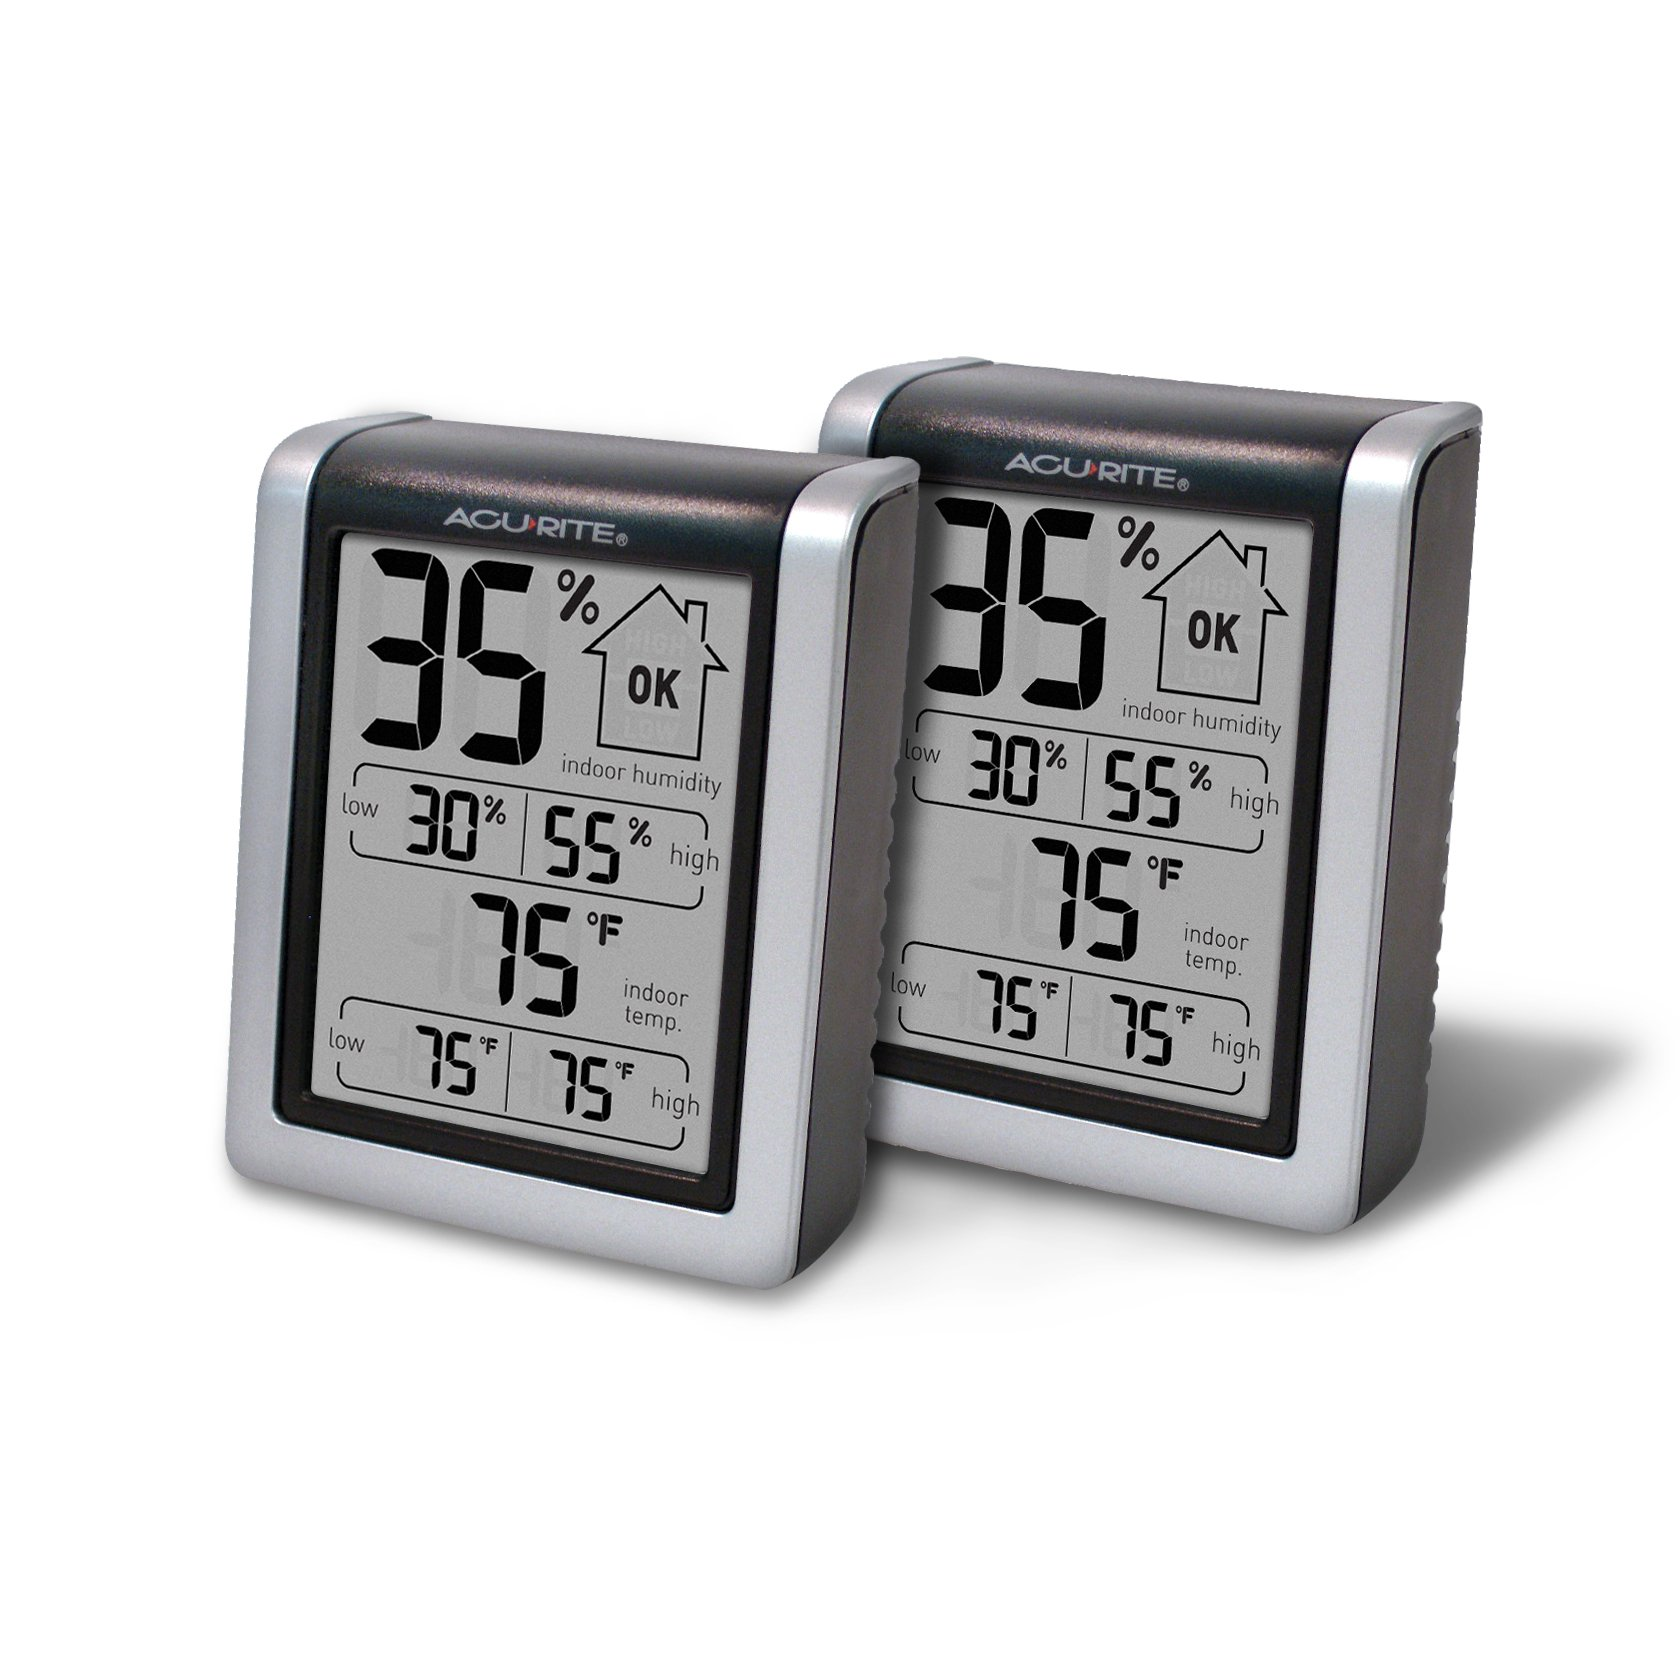 AcuRite 01226M Indoor Humidity Monitor (Pack of 2) by AcuRite